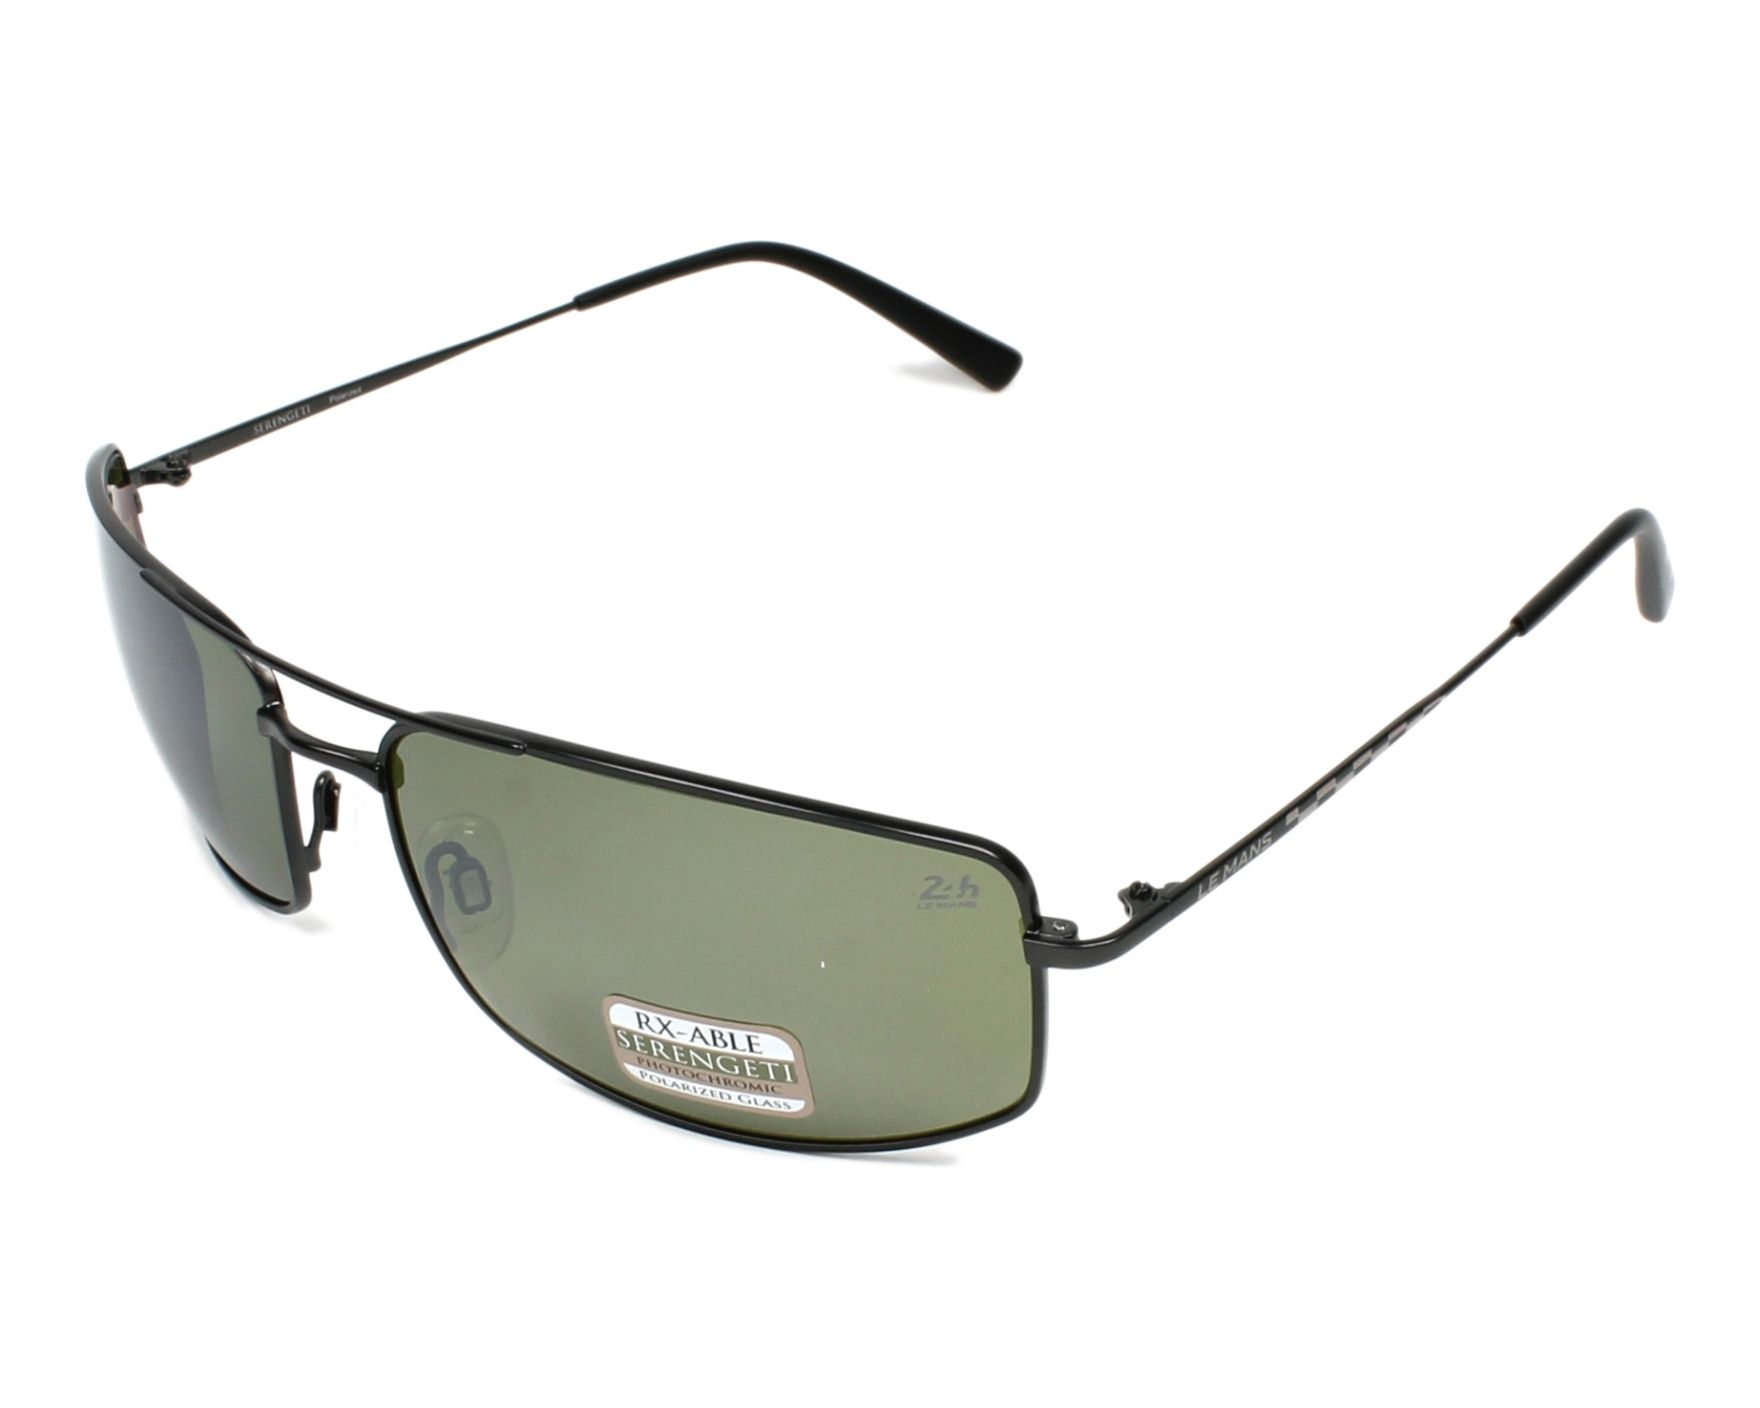 treviso black singles Buy serengeti treviso 8440 sunglasses in black online today from smartbuyglasses great prices, 2 year warranty & free delivery on all items.